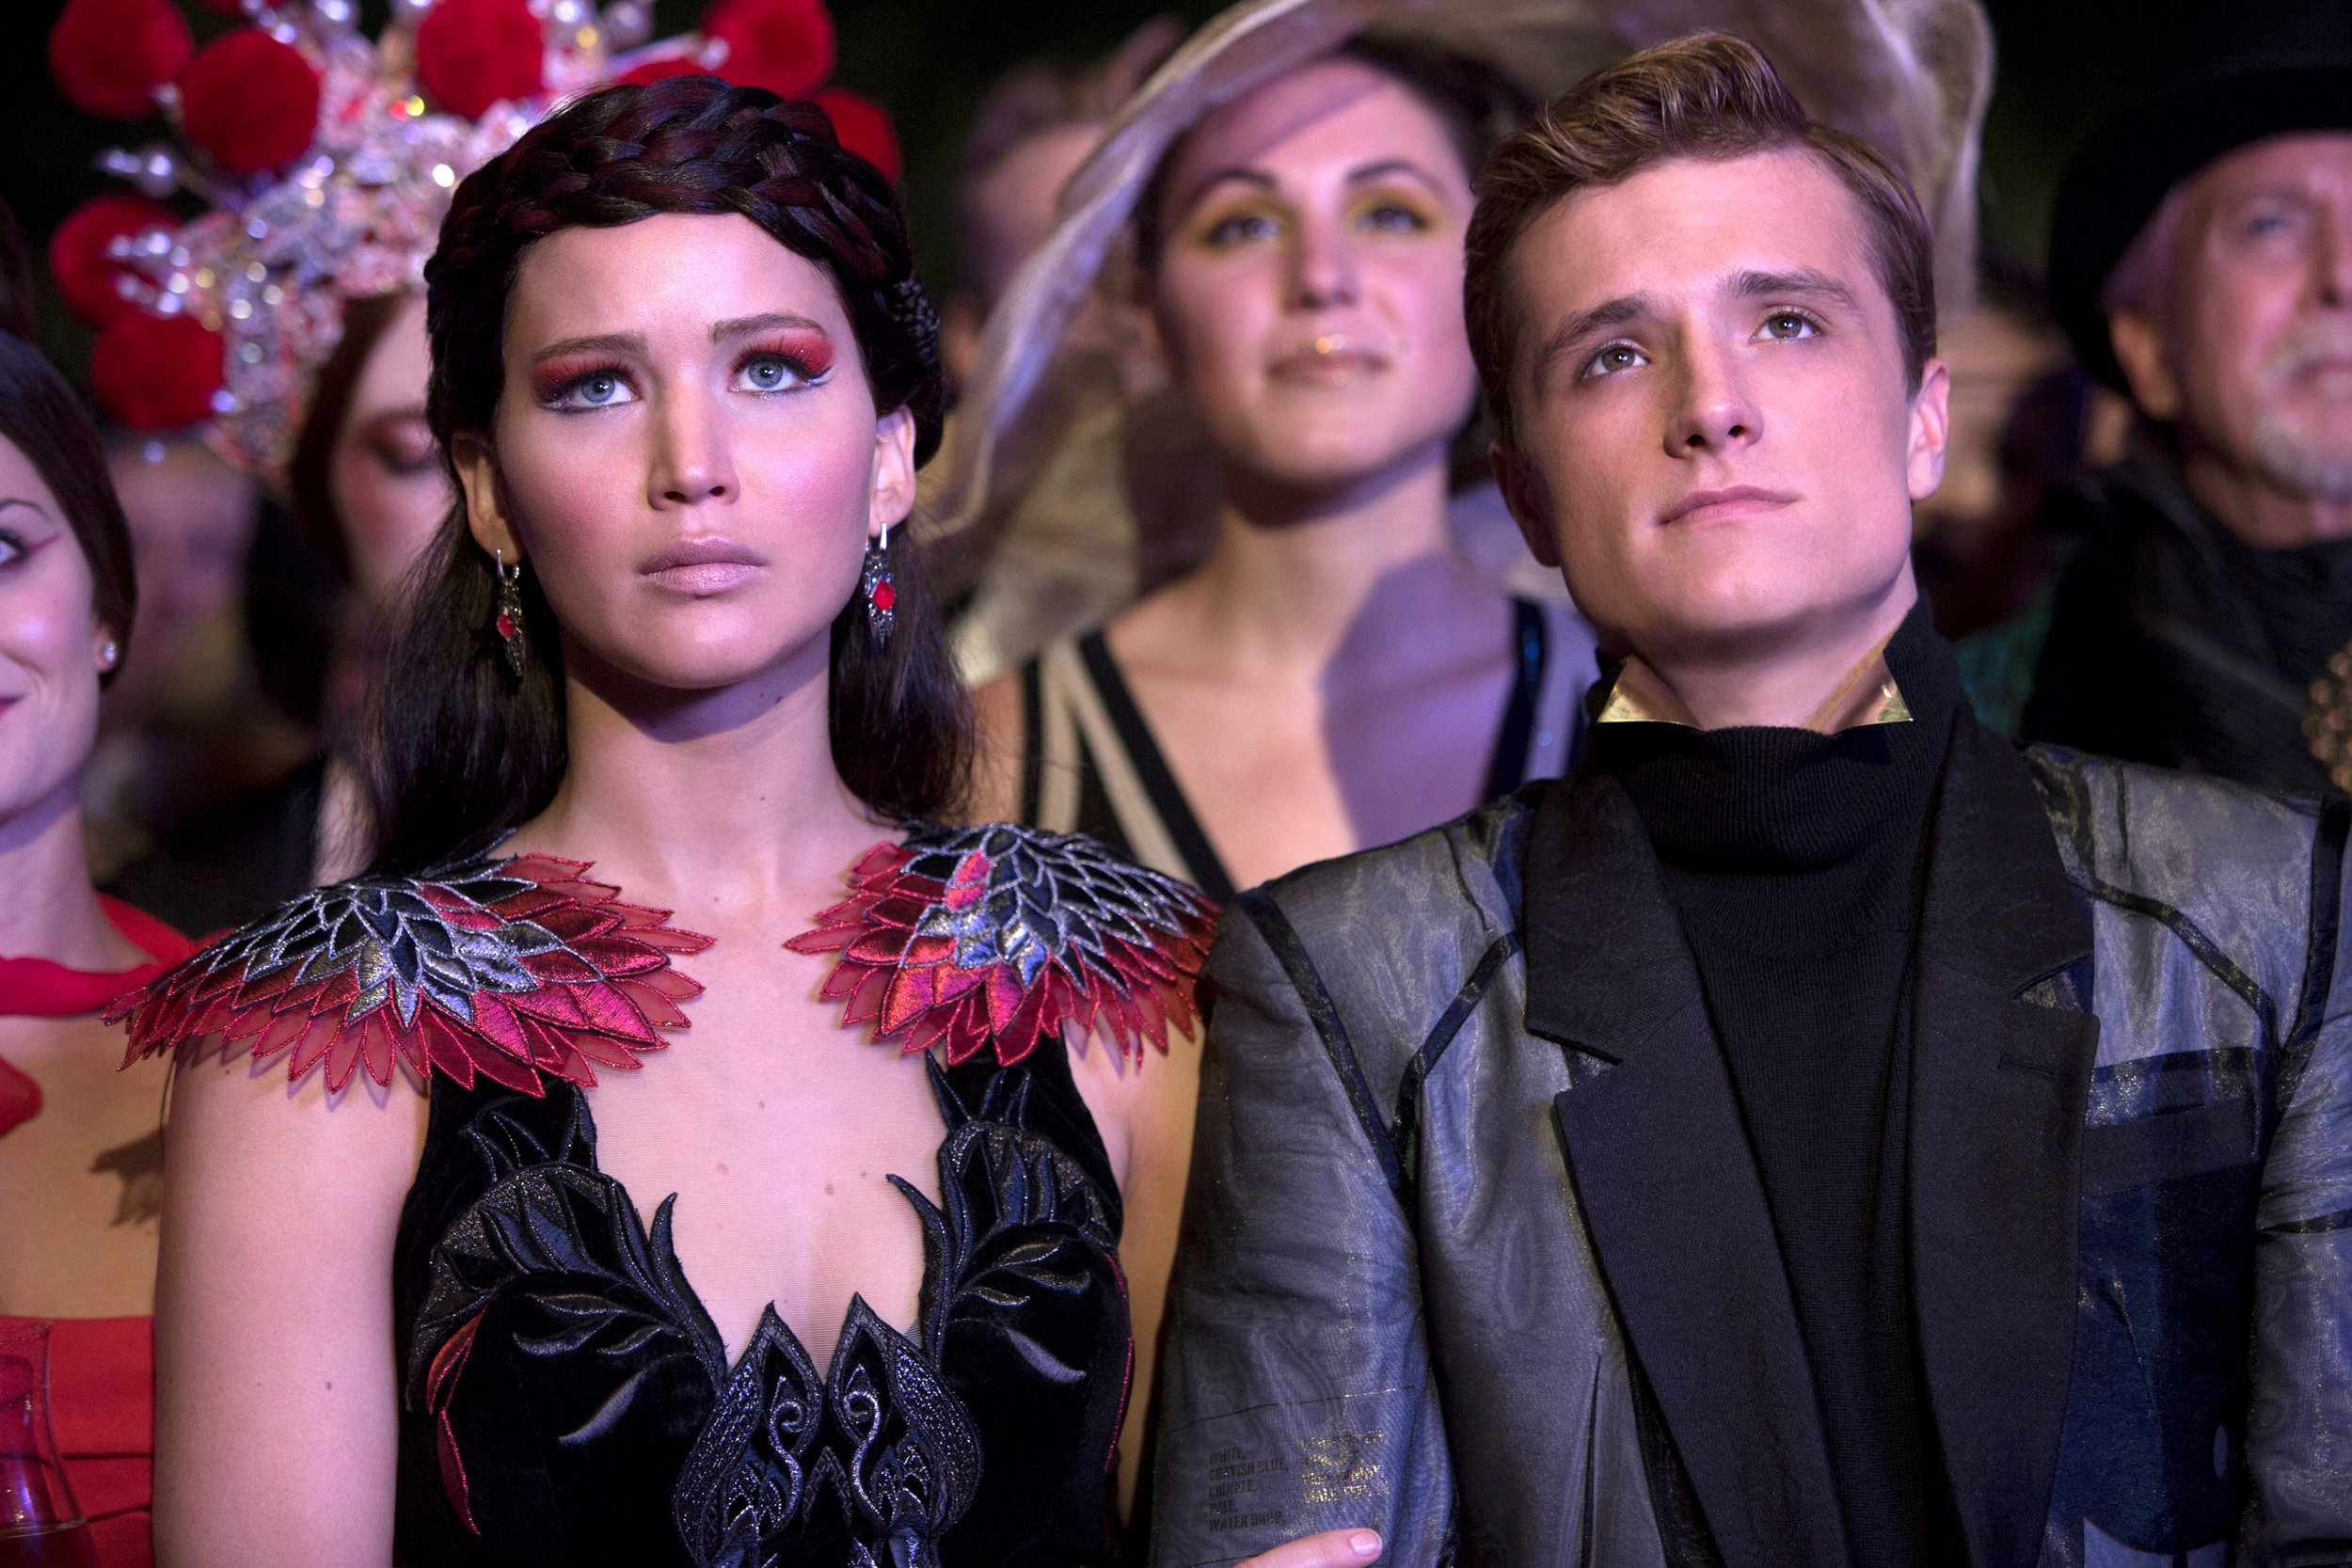 1384980748000-AP-FILM-REVIEW-THE-HUNGER-GAMES-CATCHING-FIRE-59959844.JPG